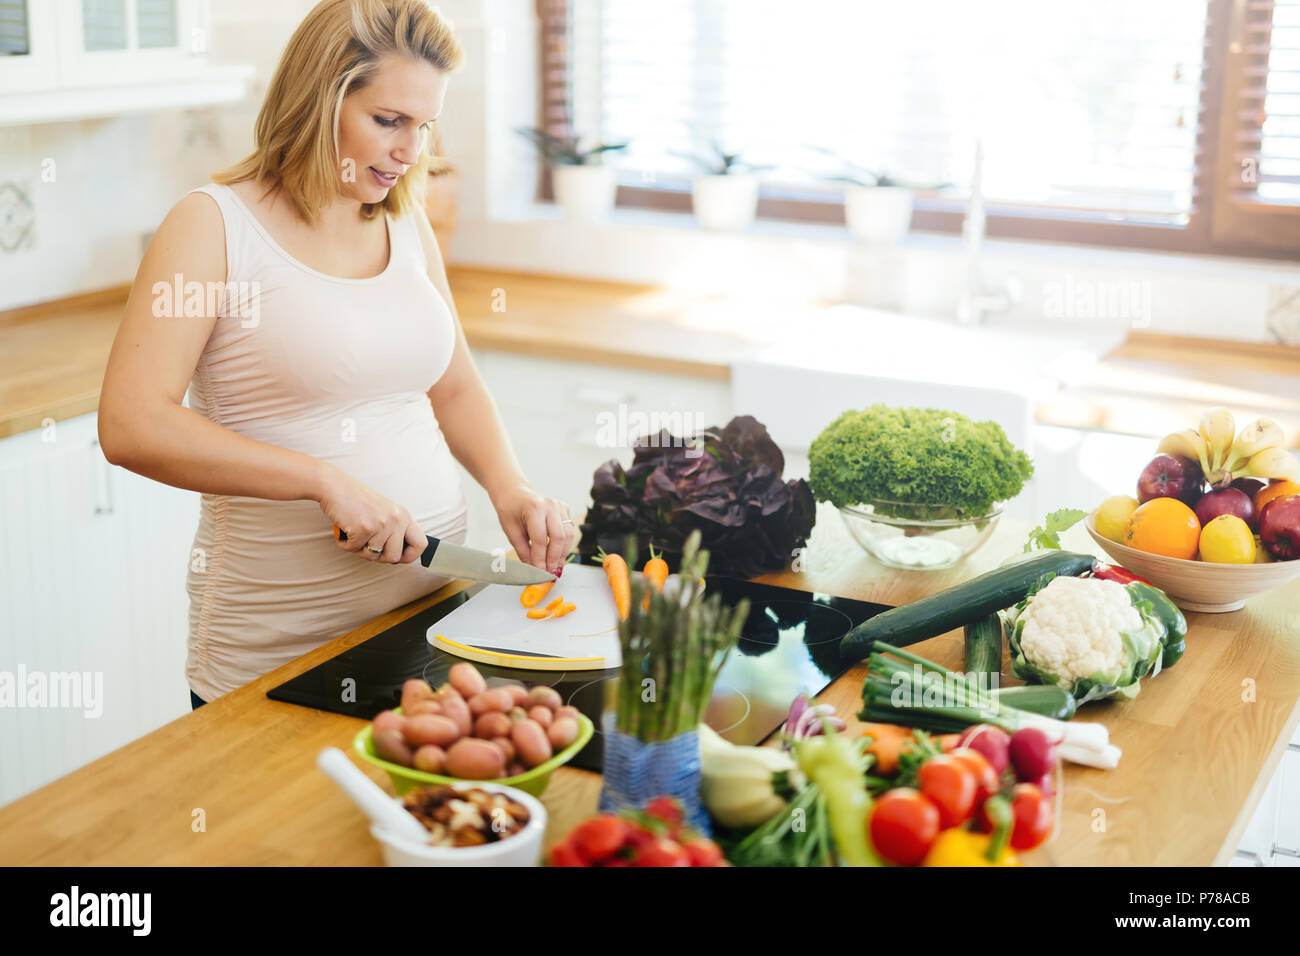 Pregnant woman eating healthy - Stock Image